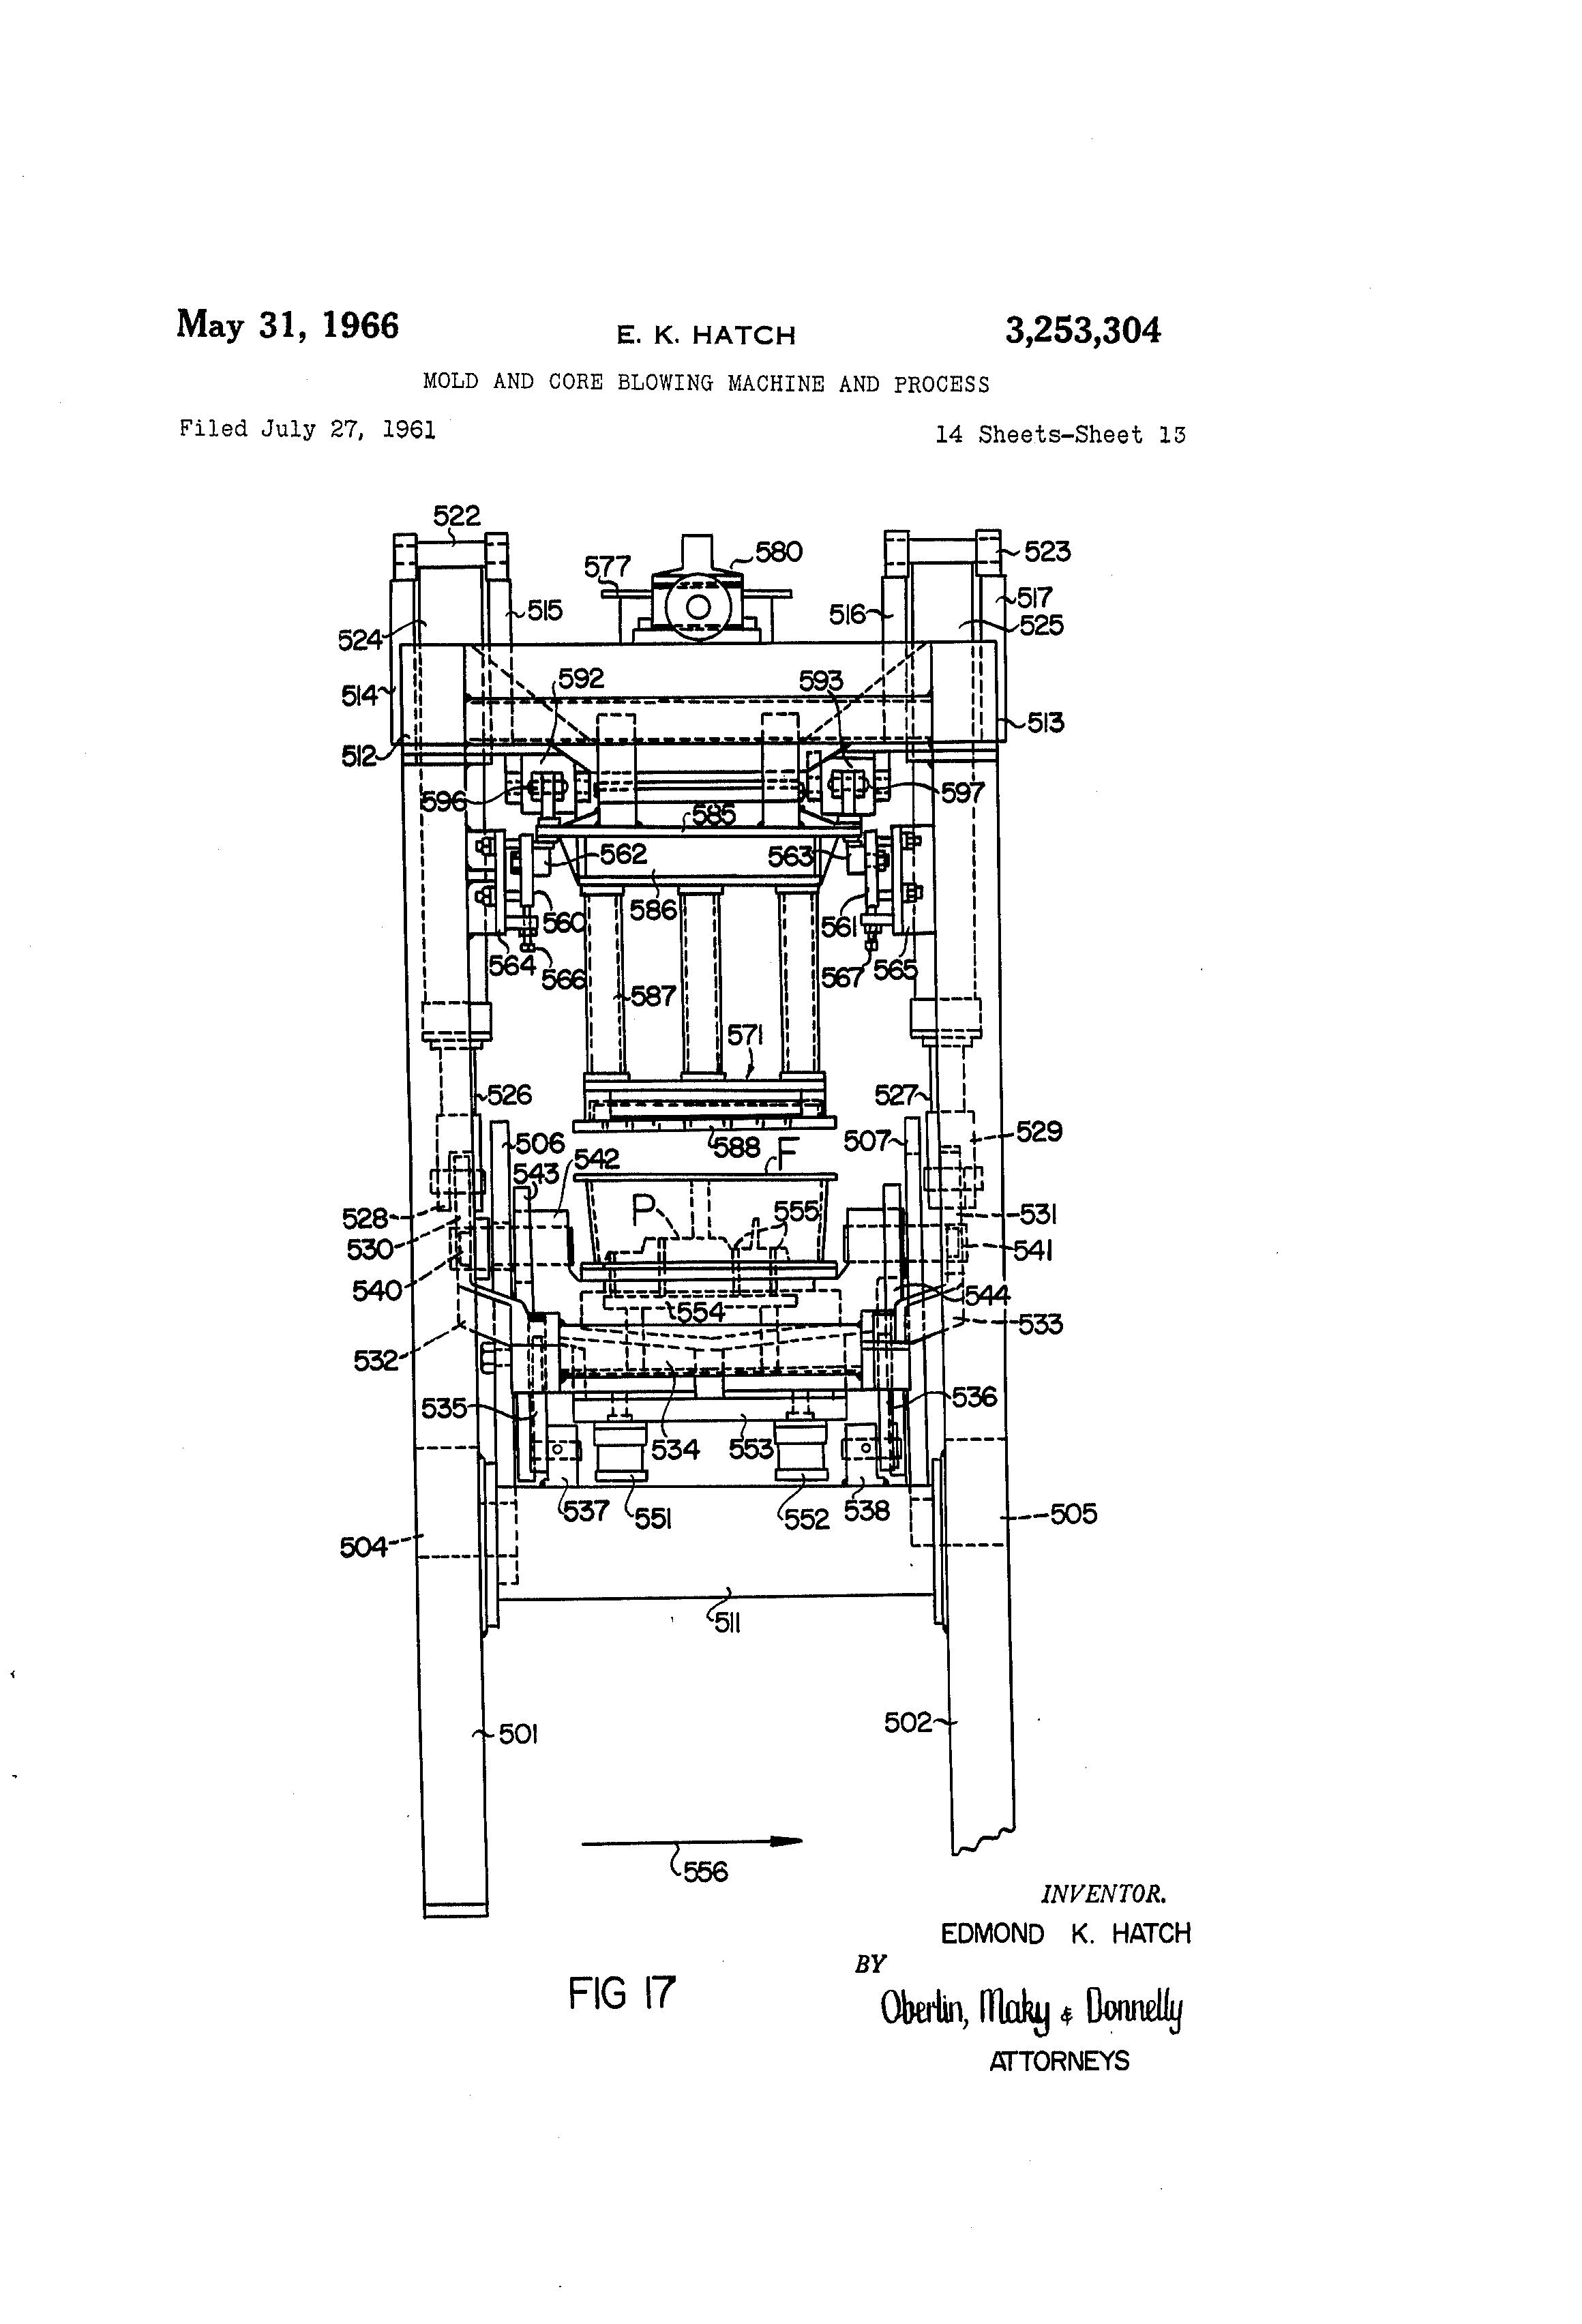 US3253304 12 patent us3253304 mold and core blowing machine and process  at eliteediting.co